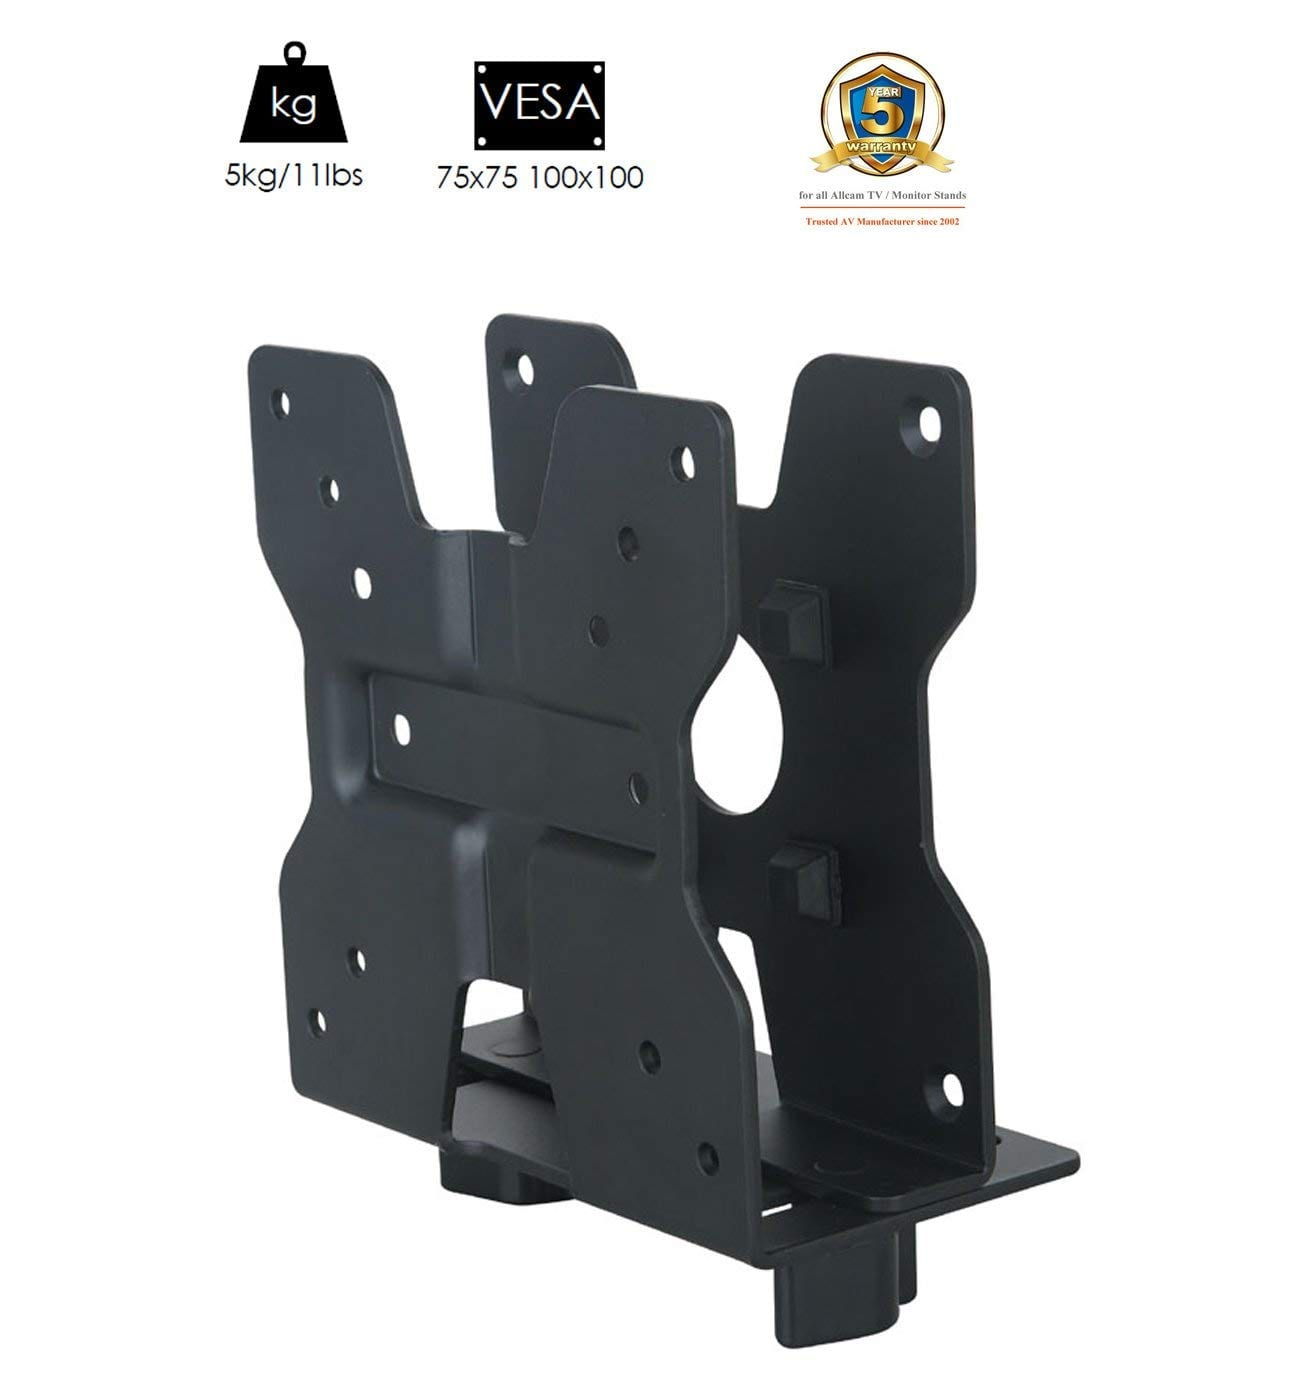 TCM01 Thin Client VESA mount, with Pole Clamp & Under-desk fixing tools